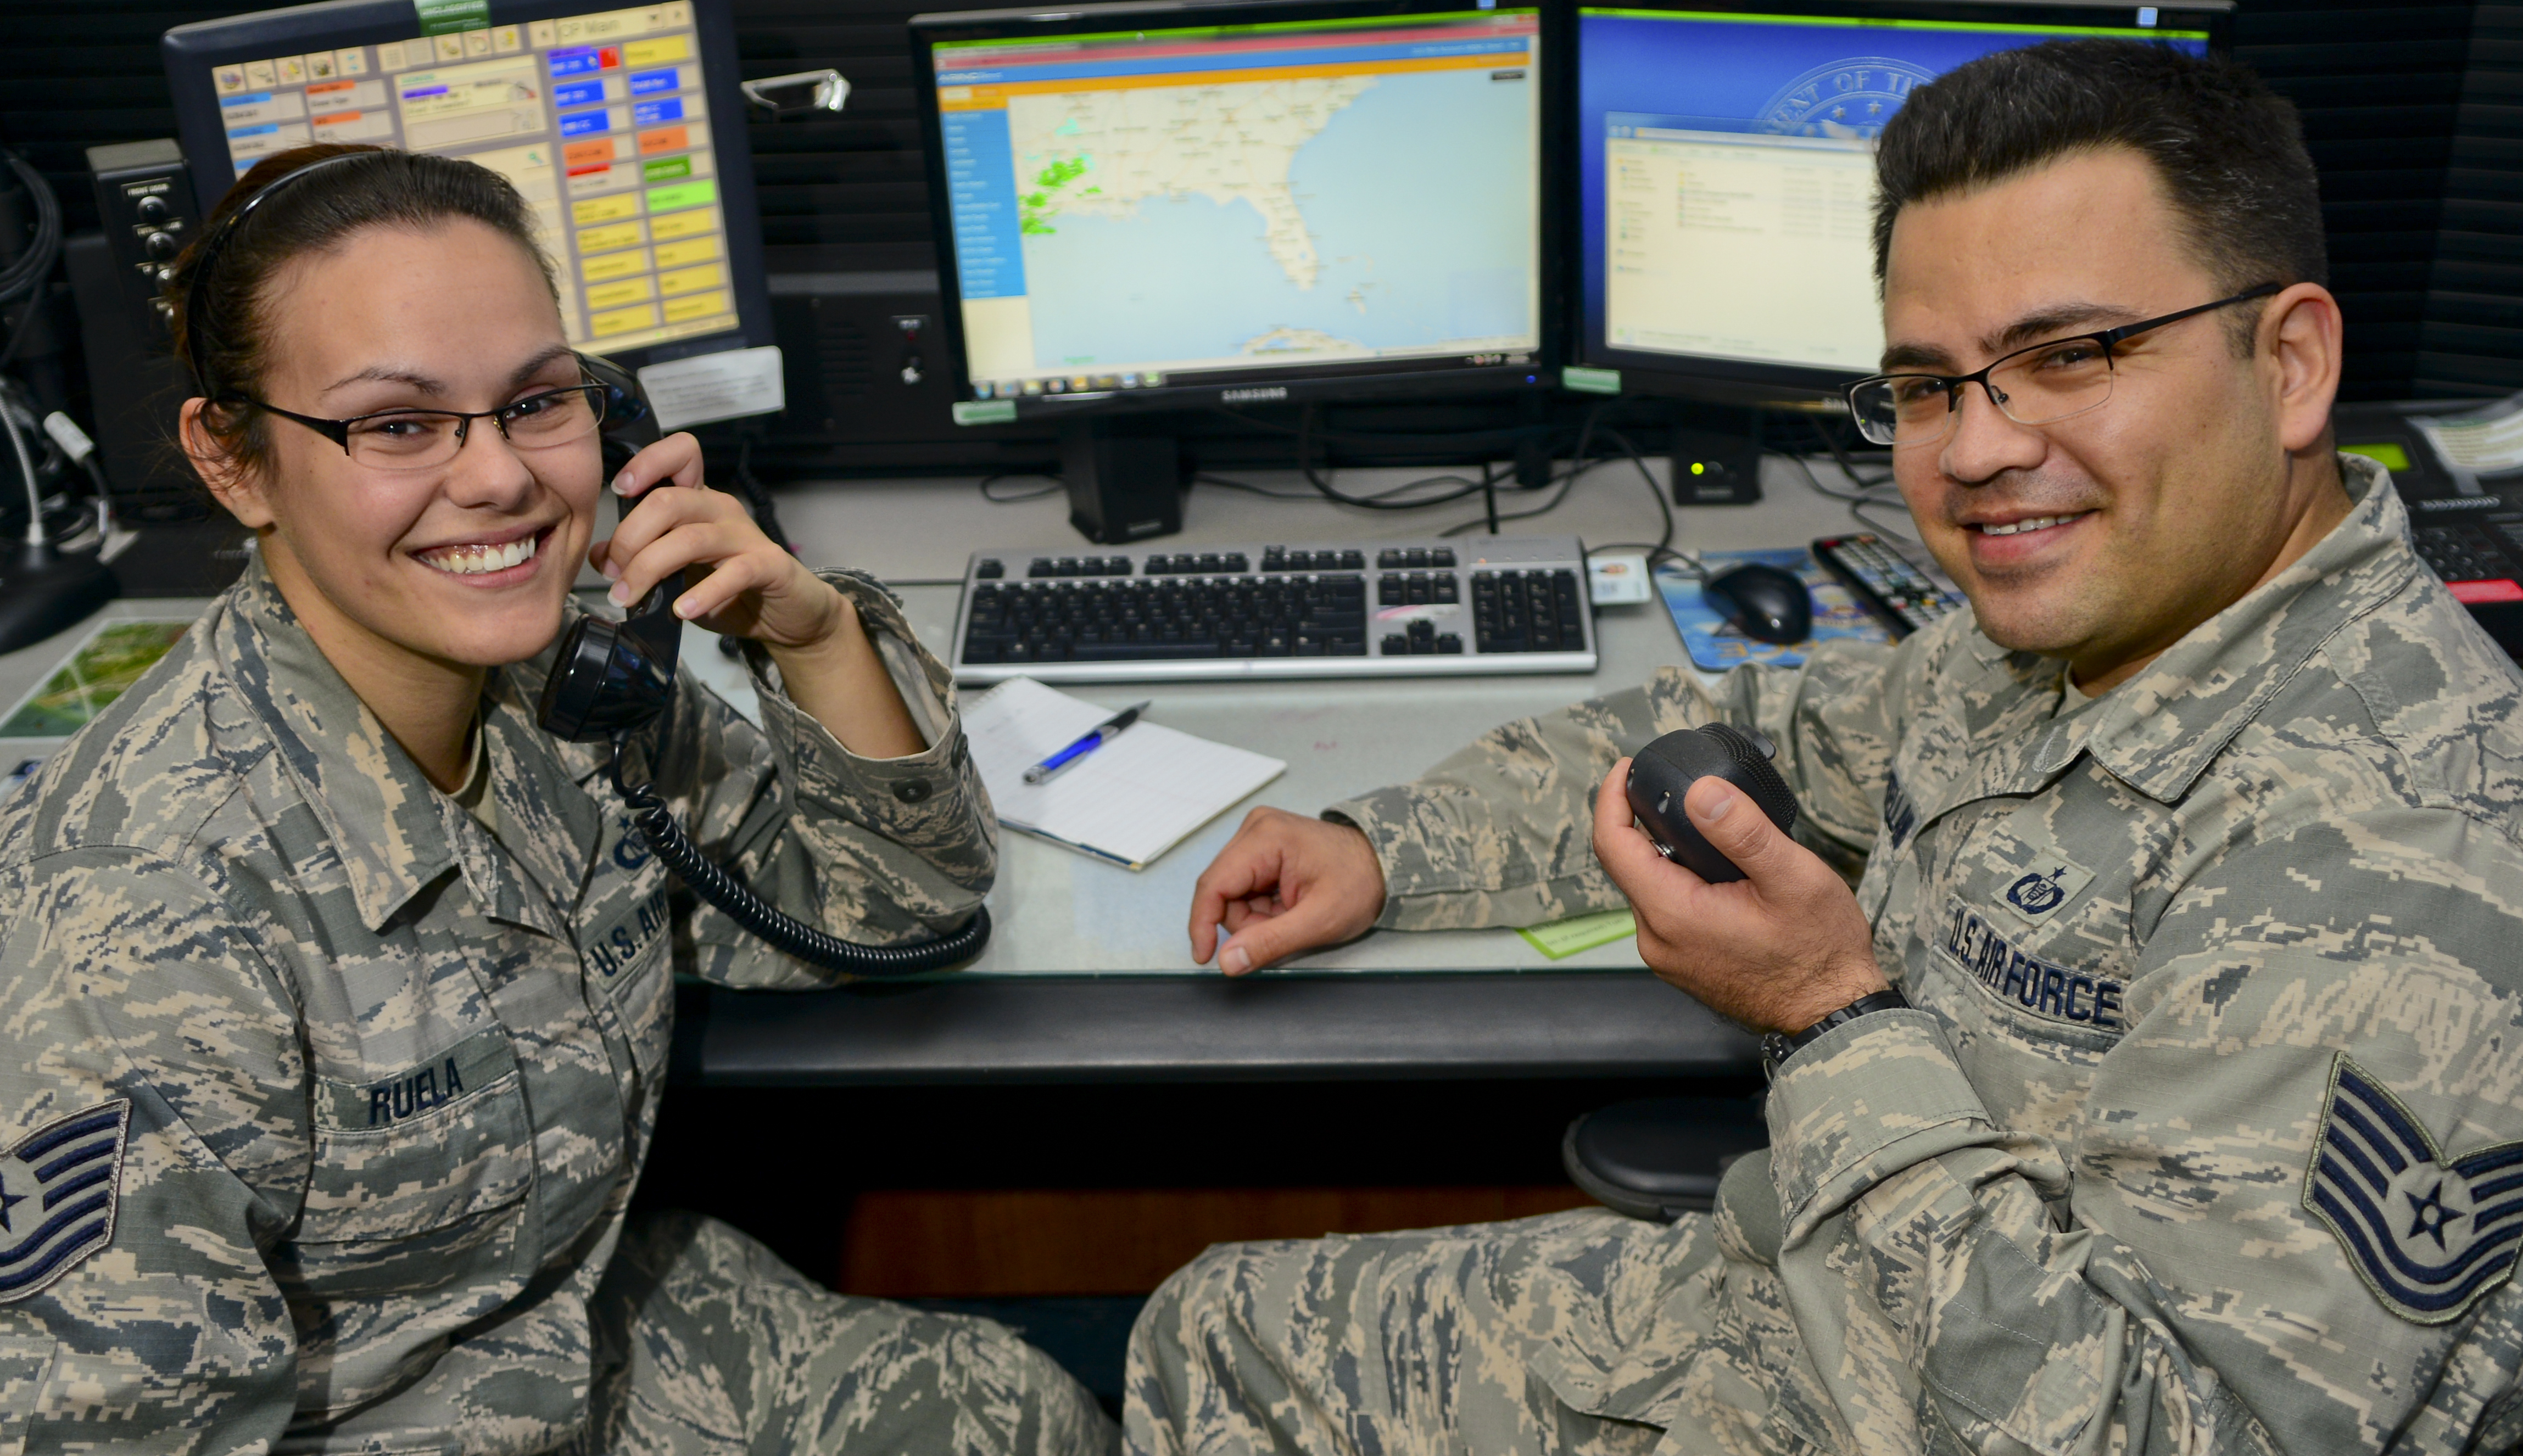 scott air force base bbw dating site Learn about careers, find career information, and locate career resources and advice with careeronestop.